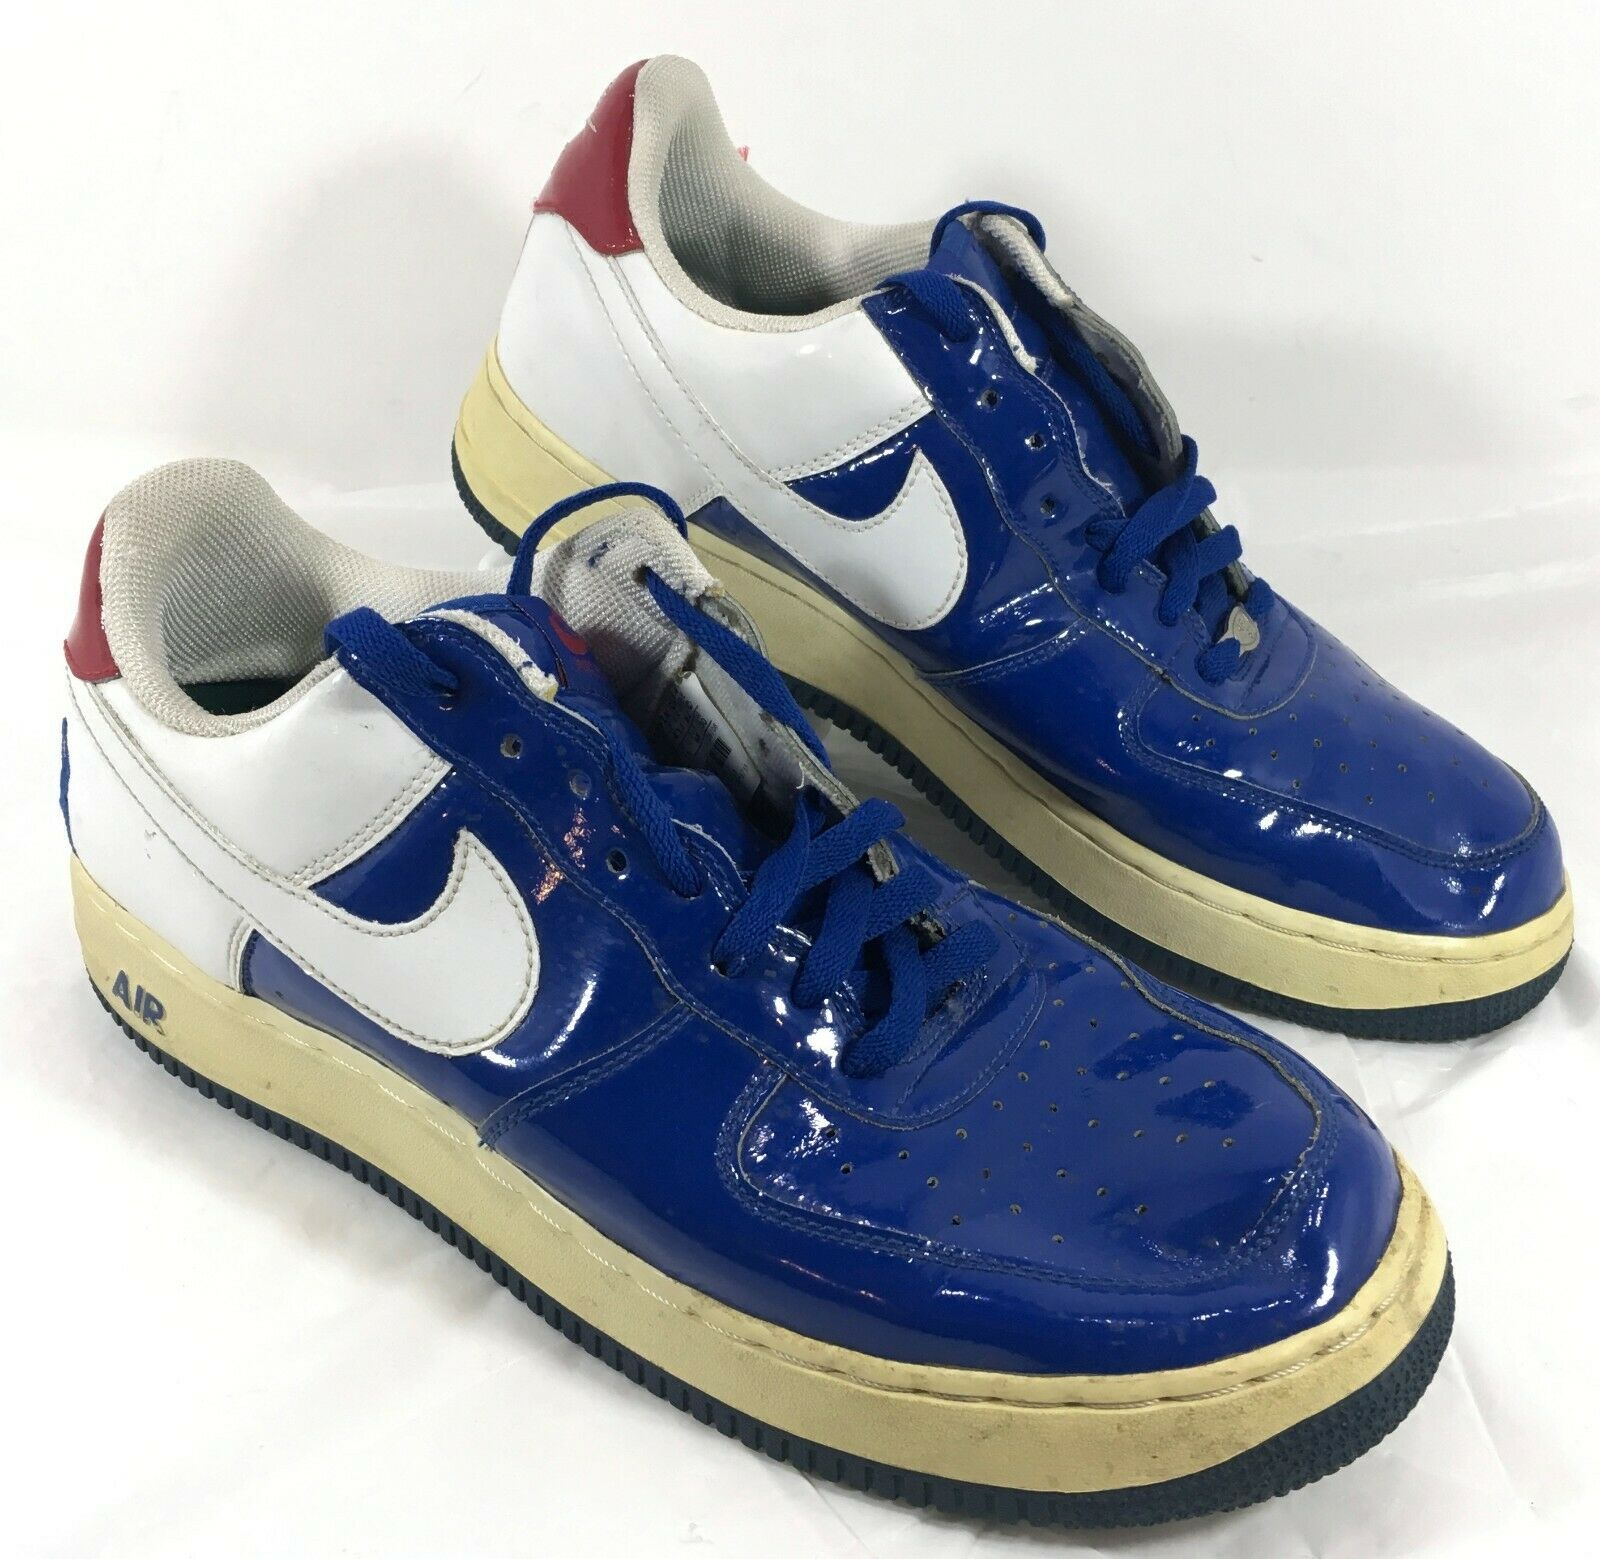 GUC 2006 Men's Nike Air Force 1 bluee White Red Basketball shoes low top Sz 12